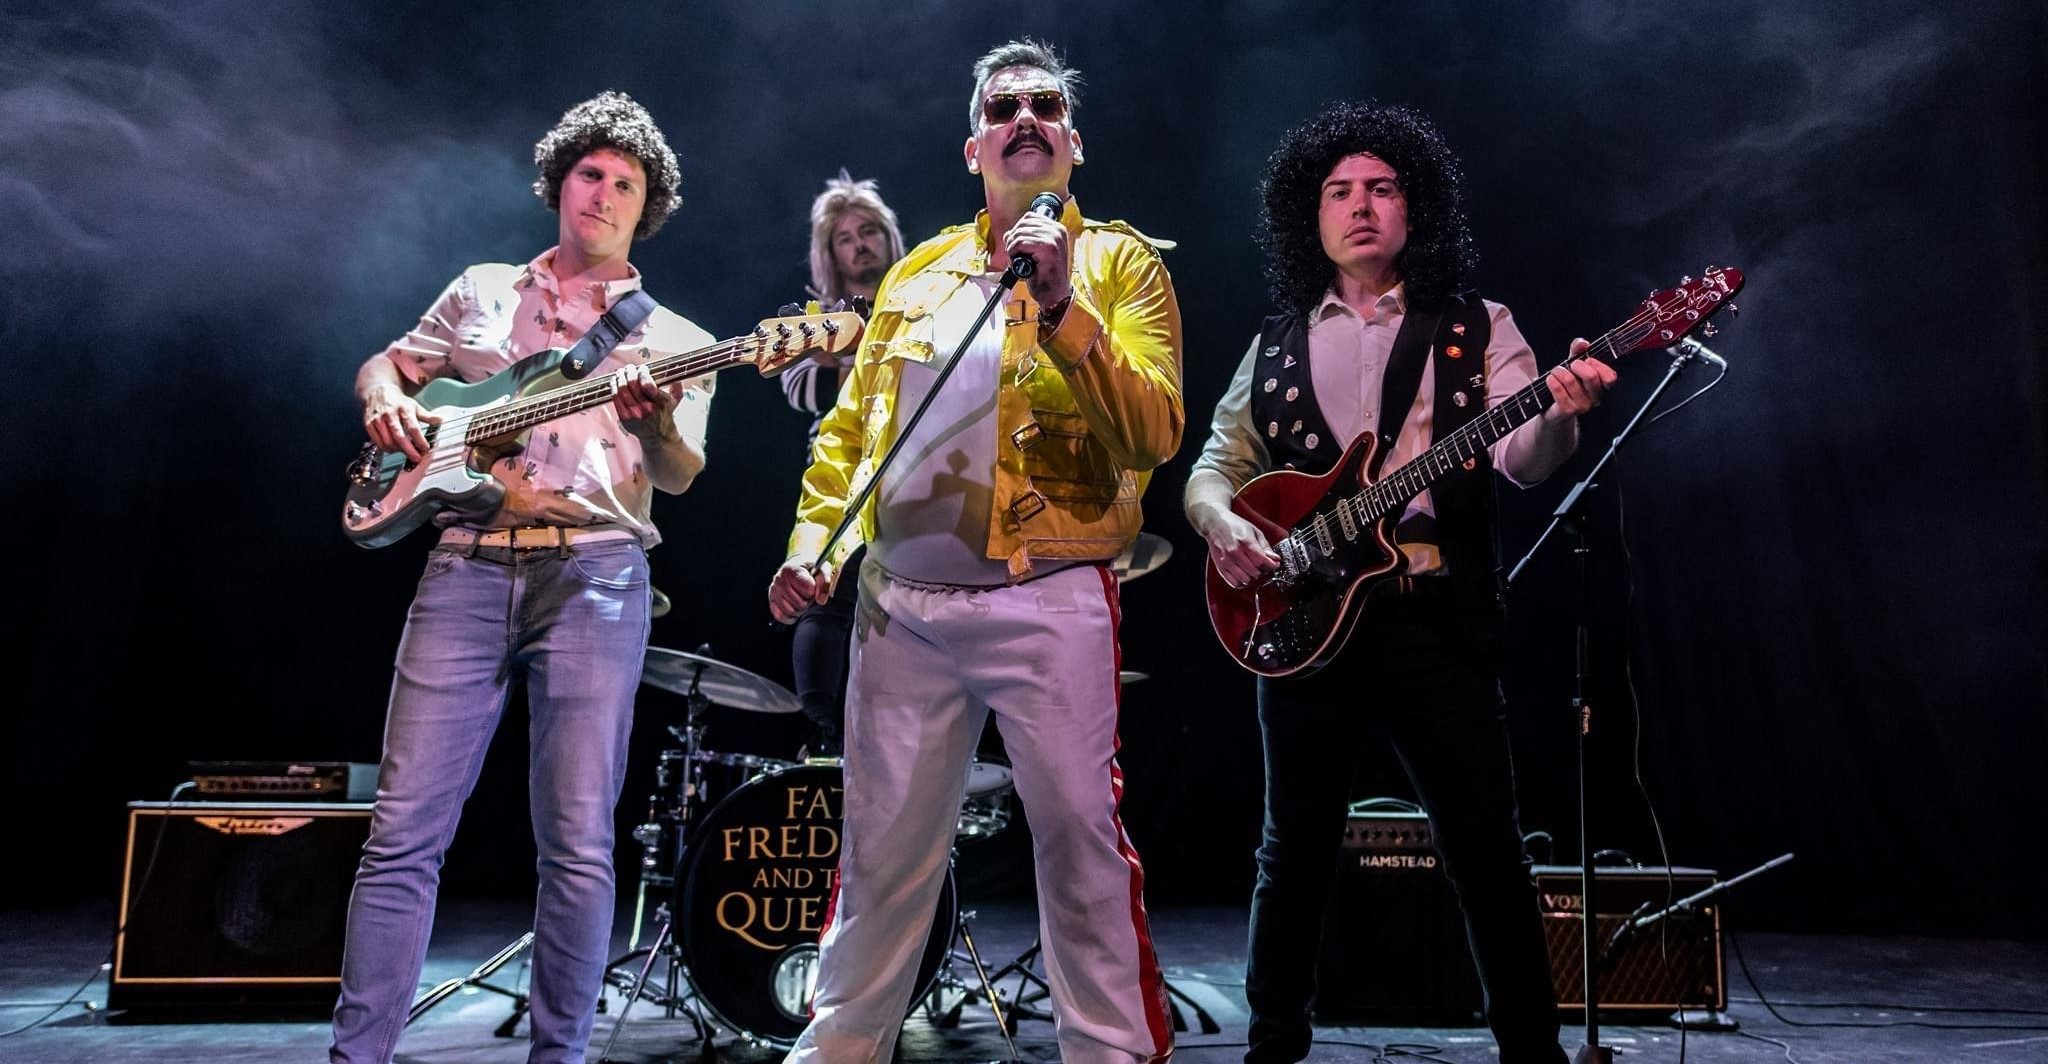 Fat Freddie And The Queens